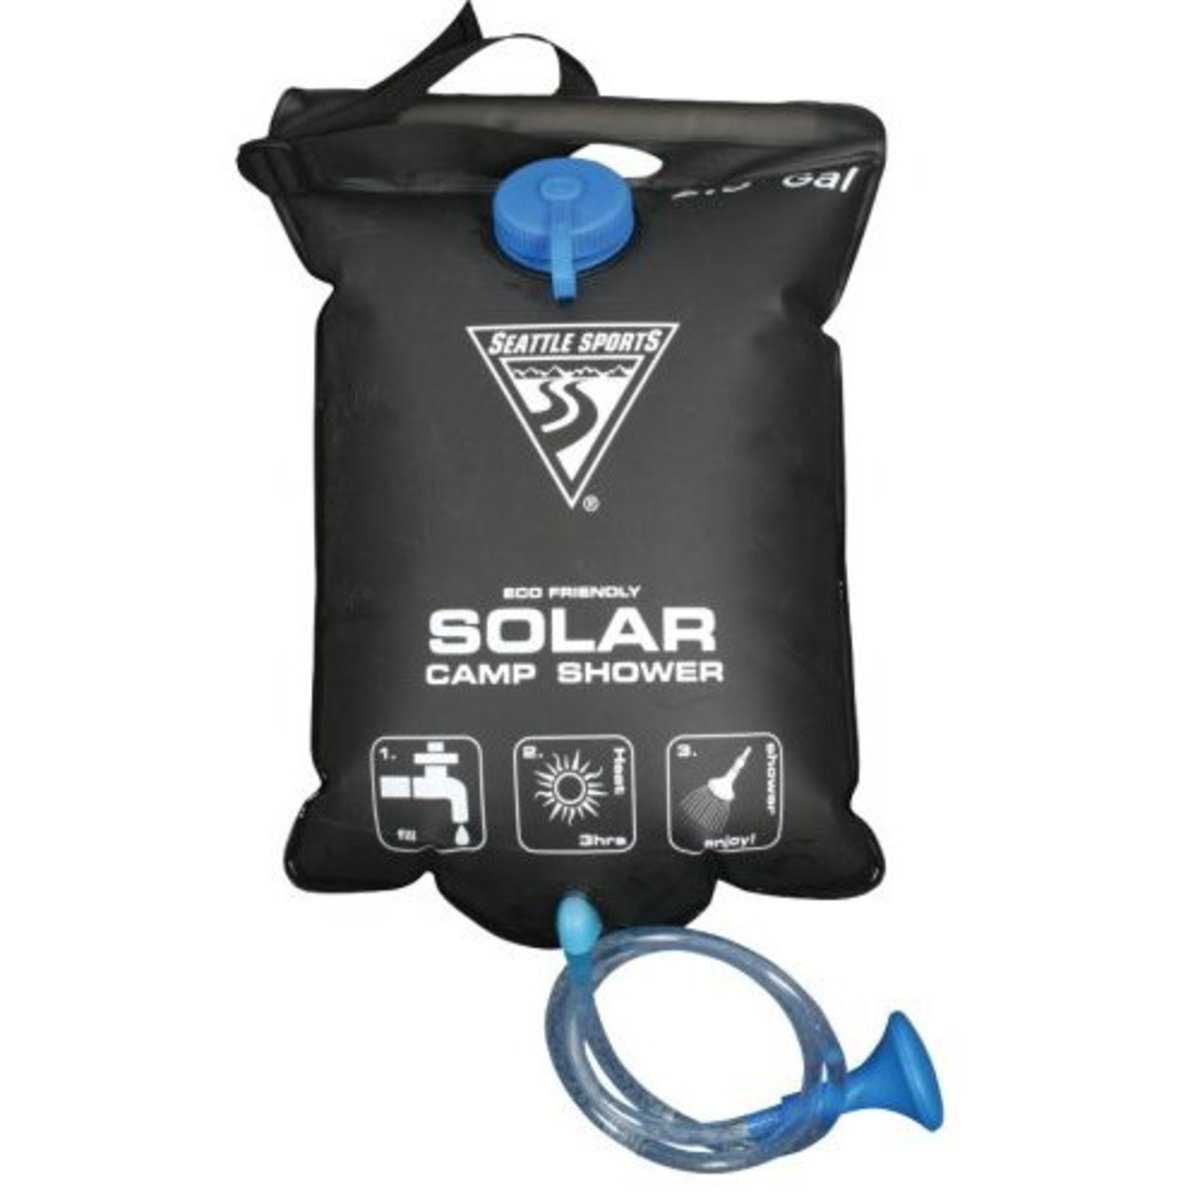 Solar powered accessories for camping, walking, hiking and travelling